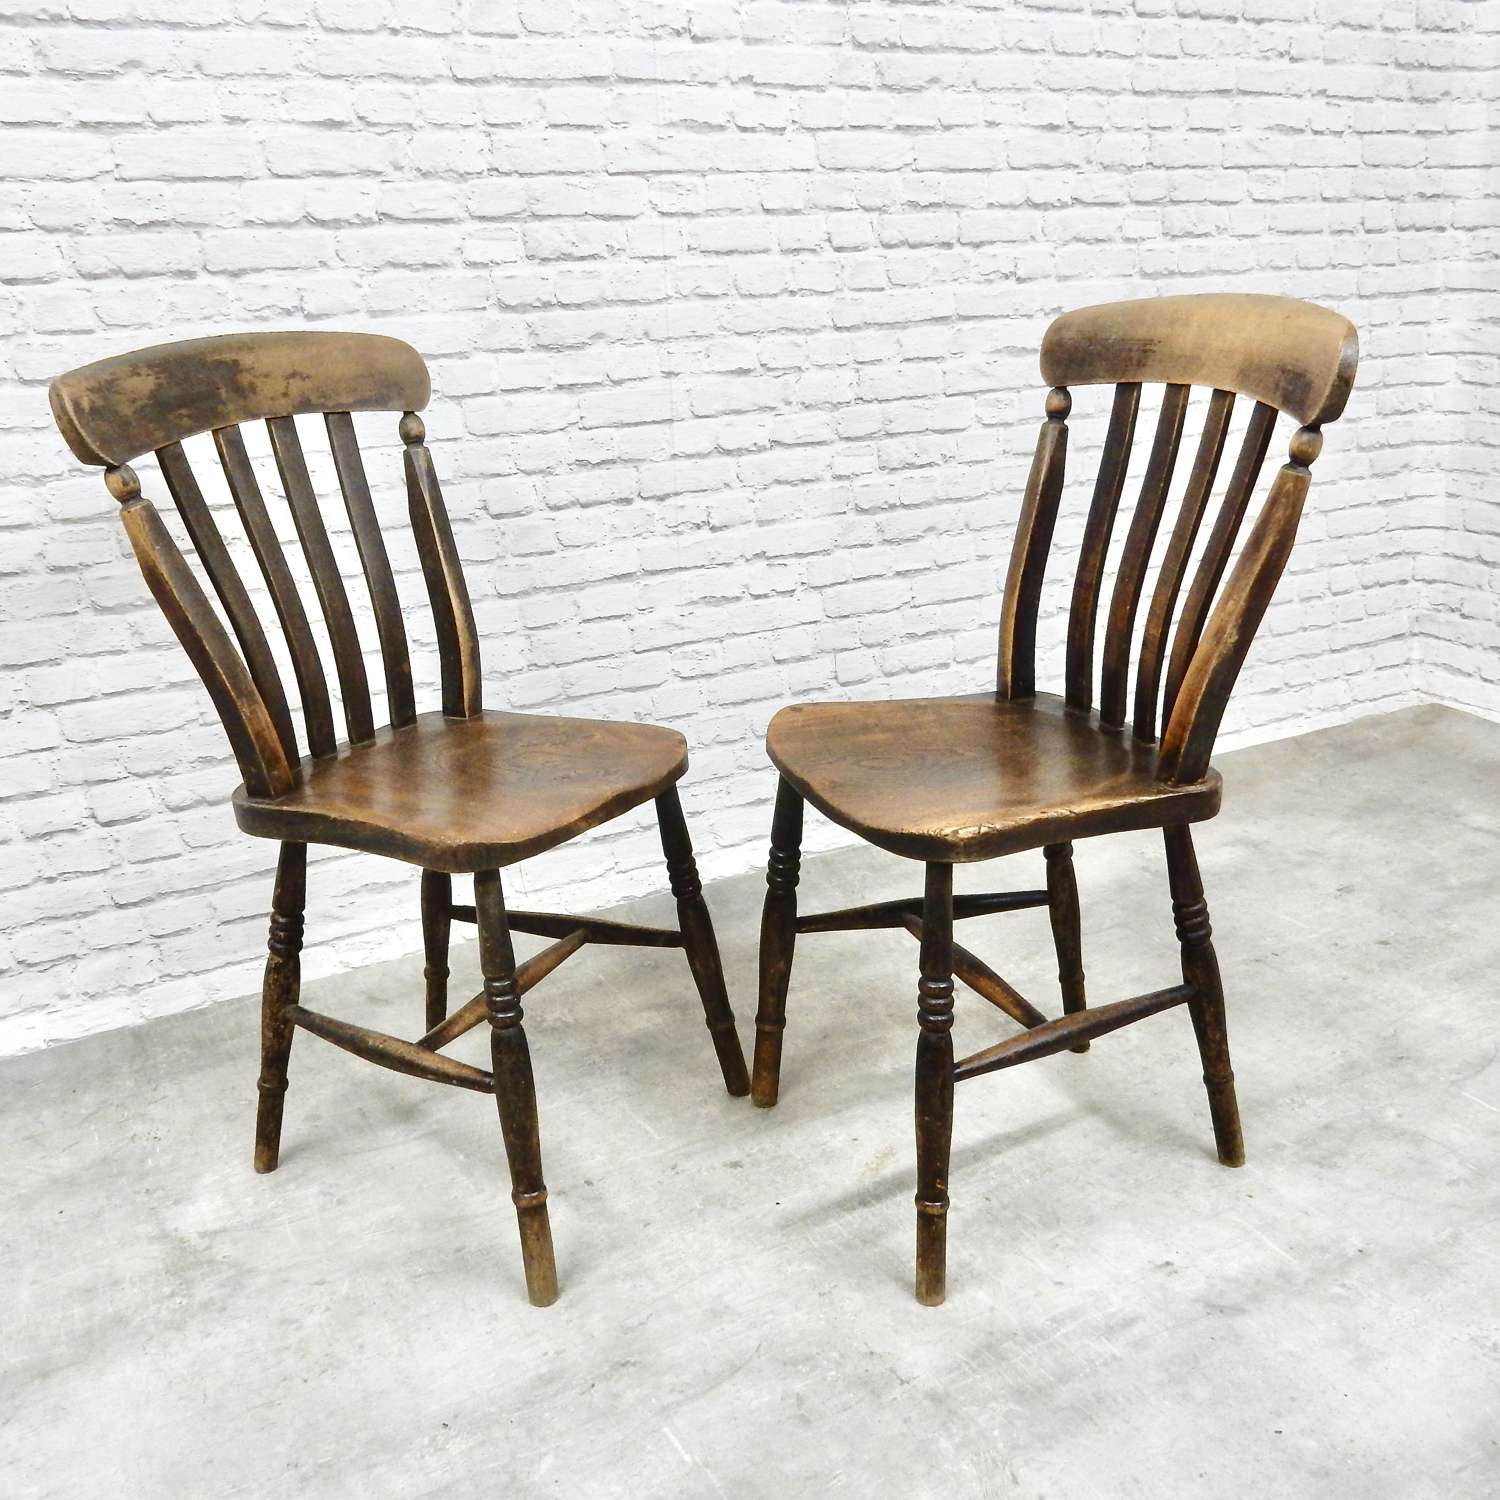 Antique Kitchen Chairs x2